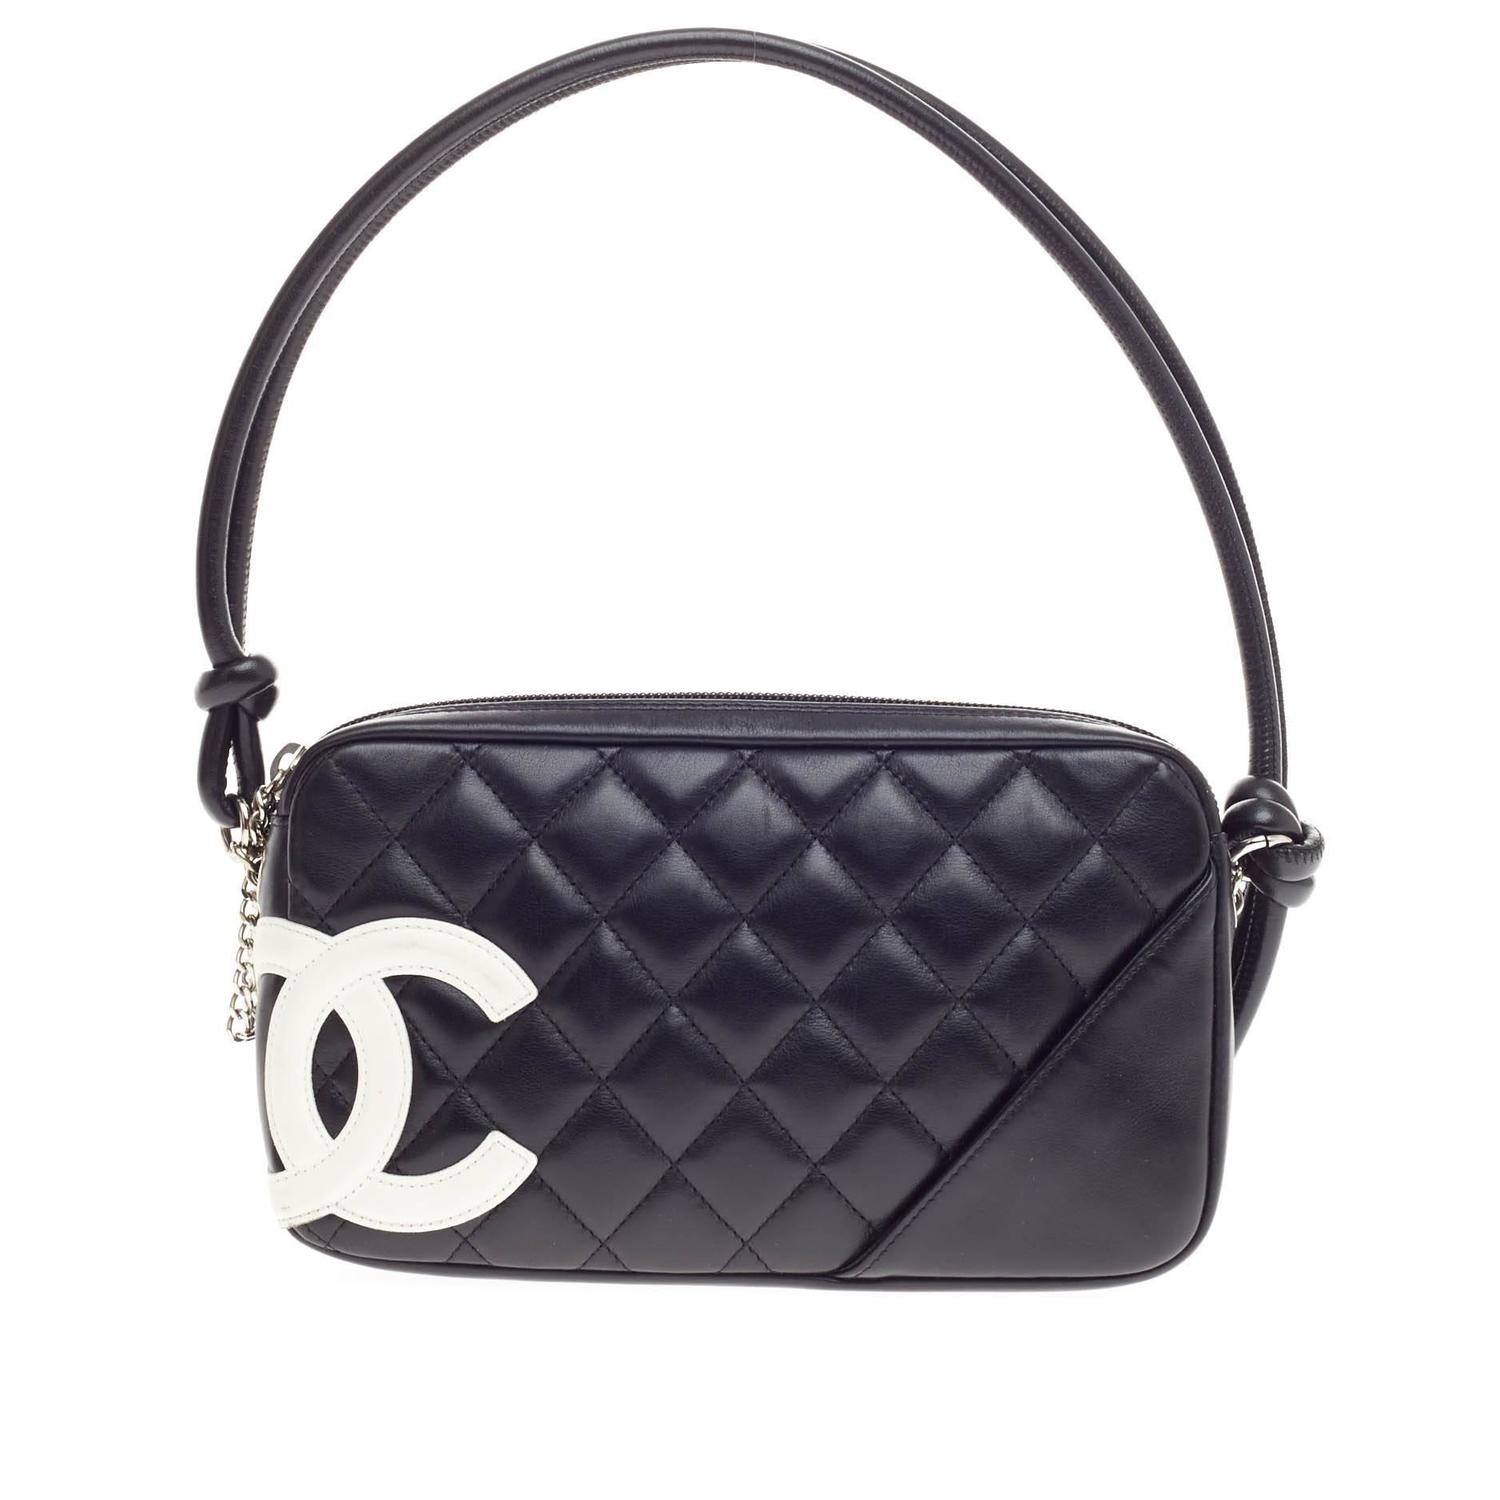 009f597d7916 Chanel Cambon Pochette Quilted Leather at 1stdibs